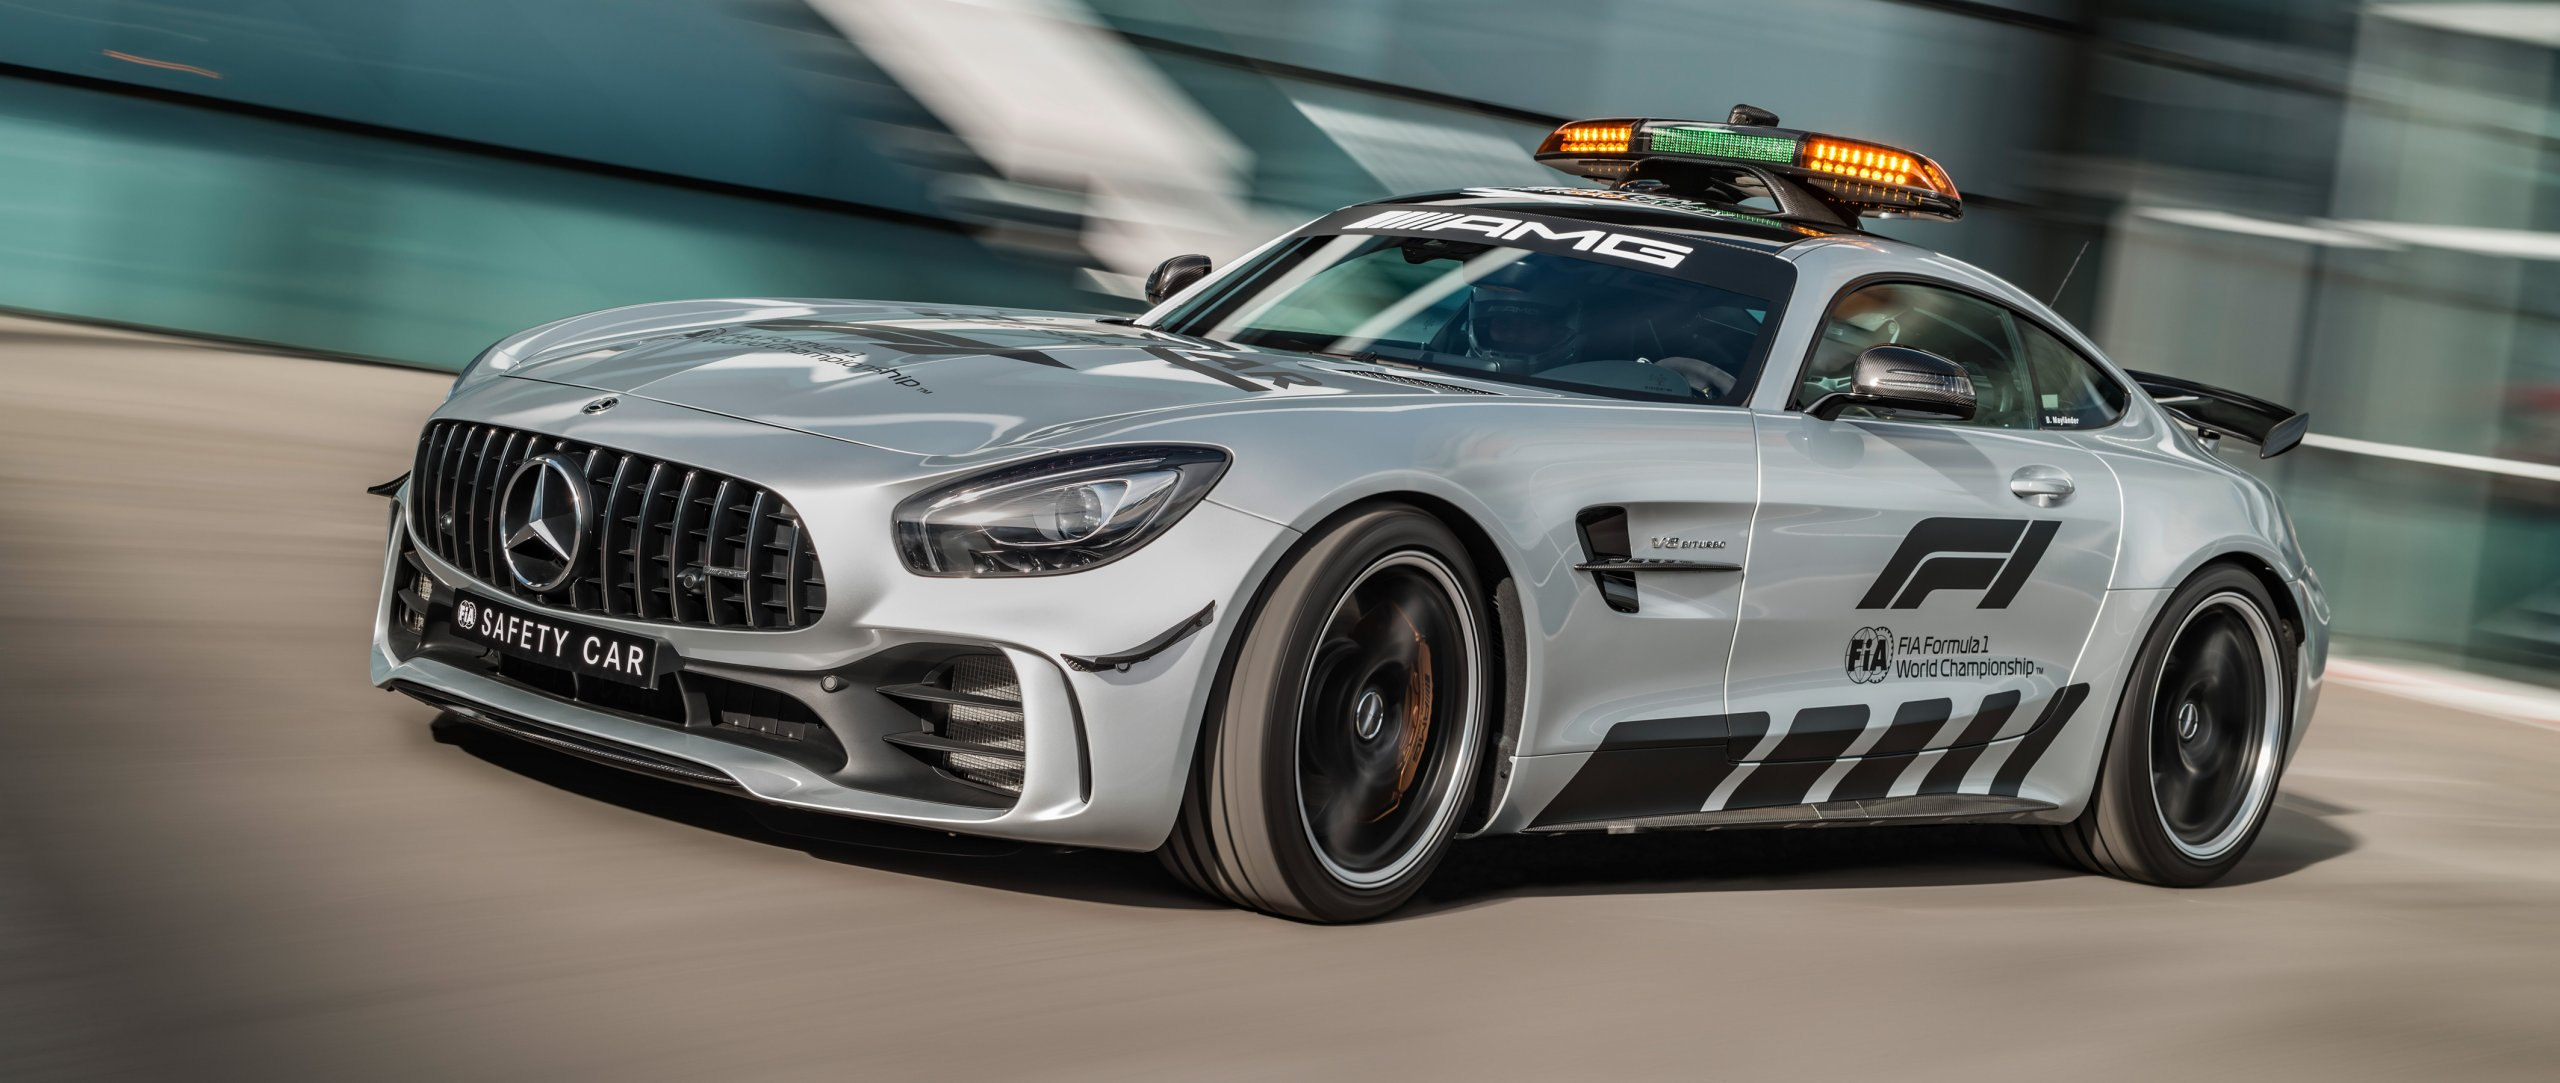 News Introducing The Most Powerful F1 Safety Car Ever